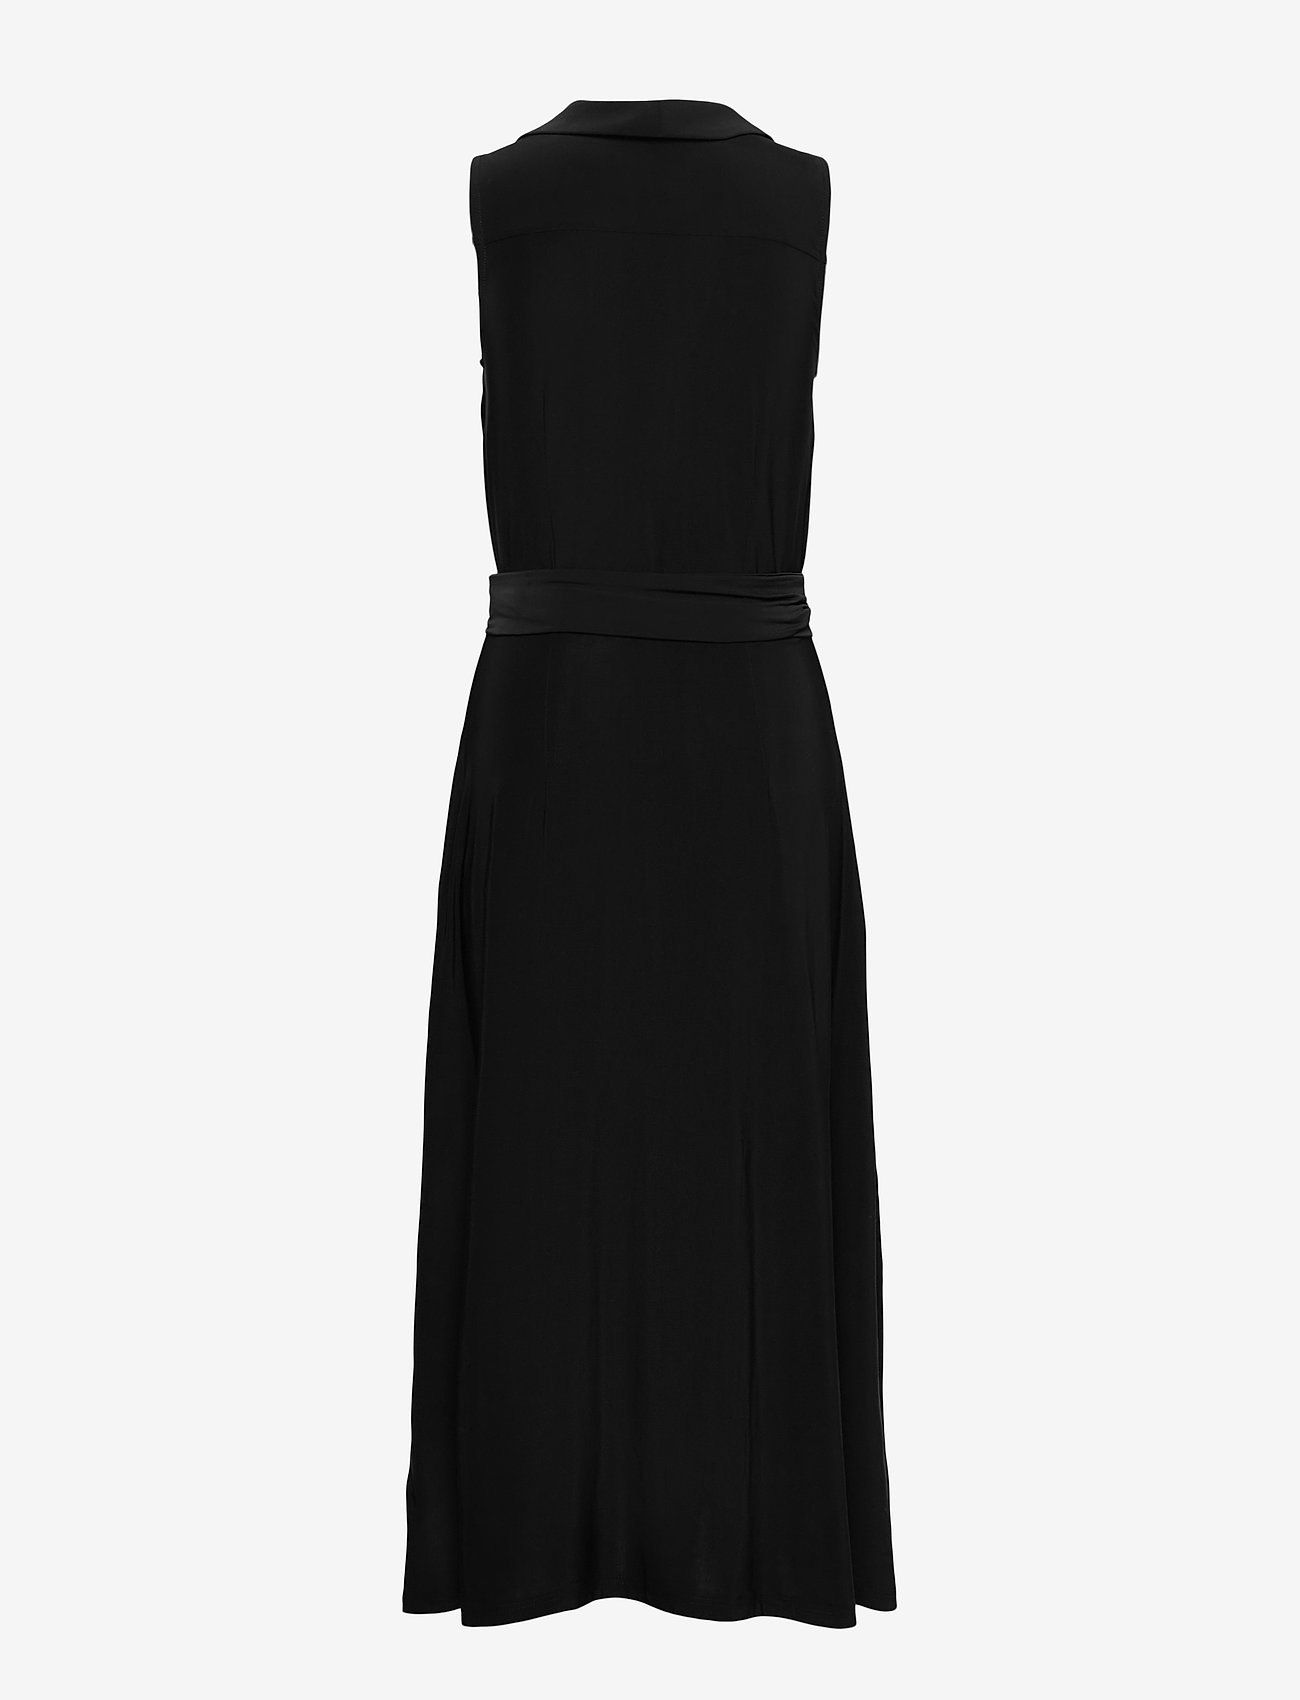 Ilse Jacobsen - Dress - cocktailkjoler - black - 1